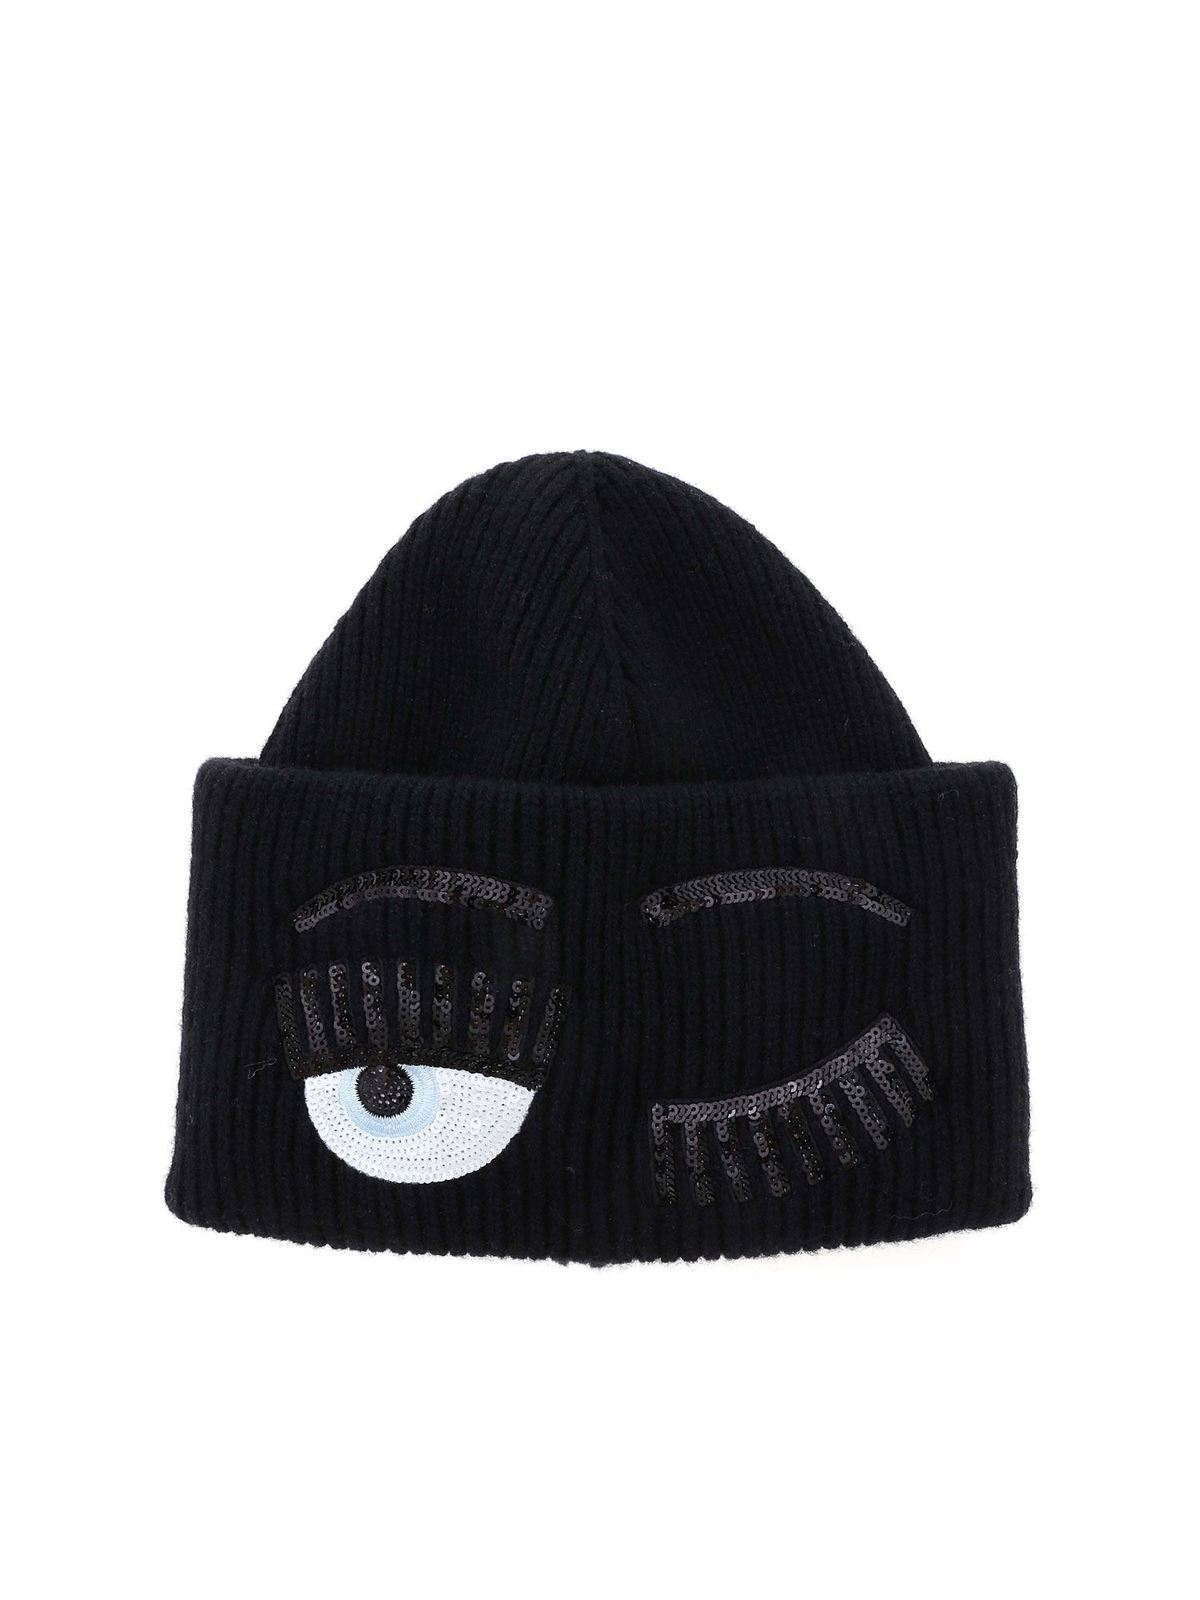 Chiara Ferragni FLIRTING BEANIE IN BLACK